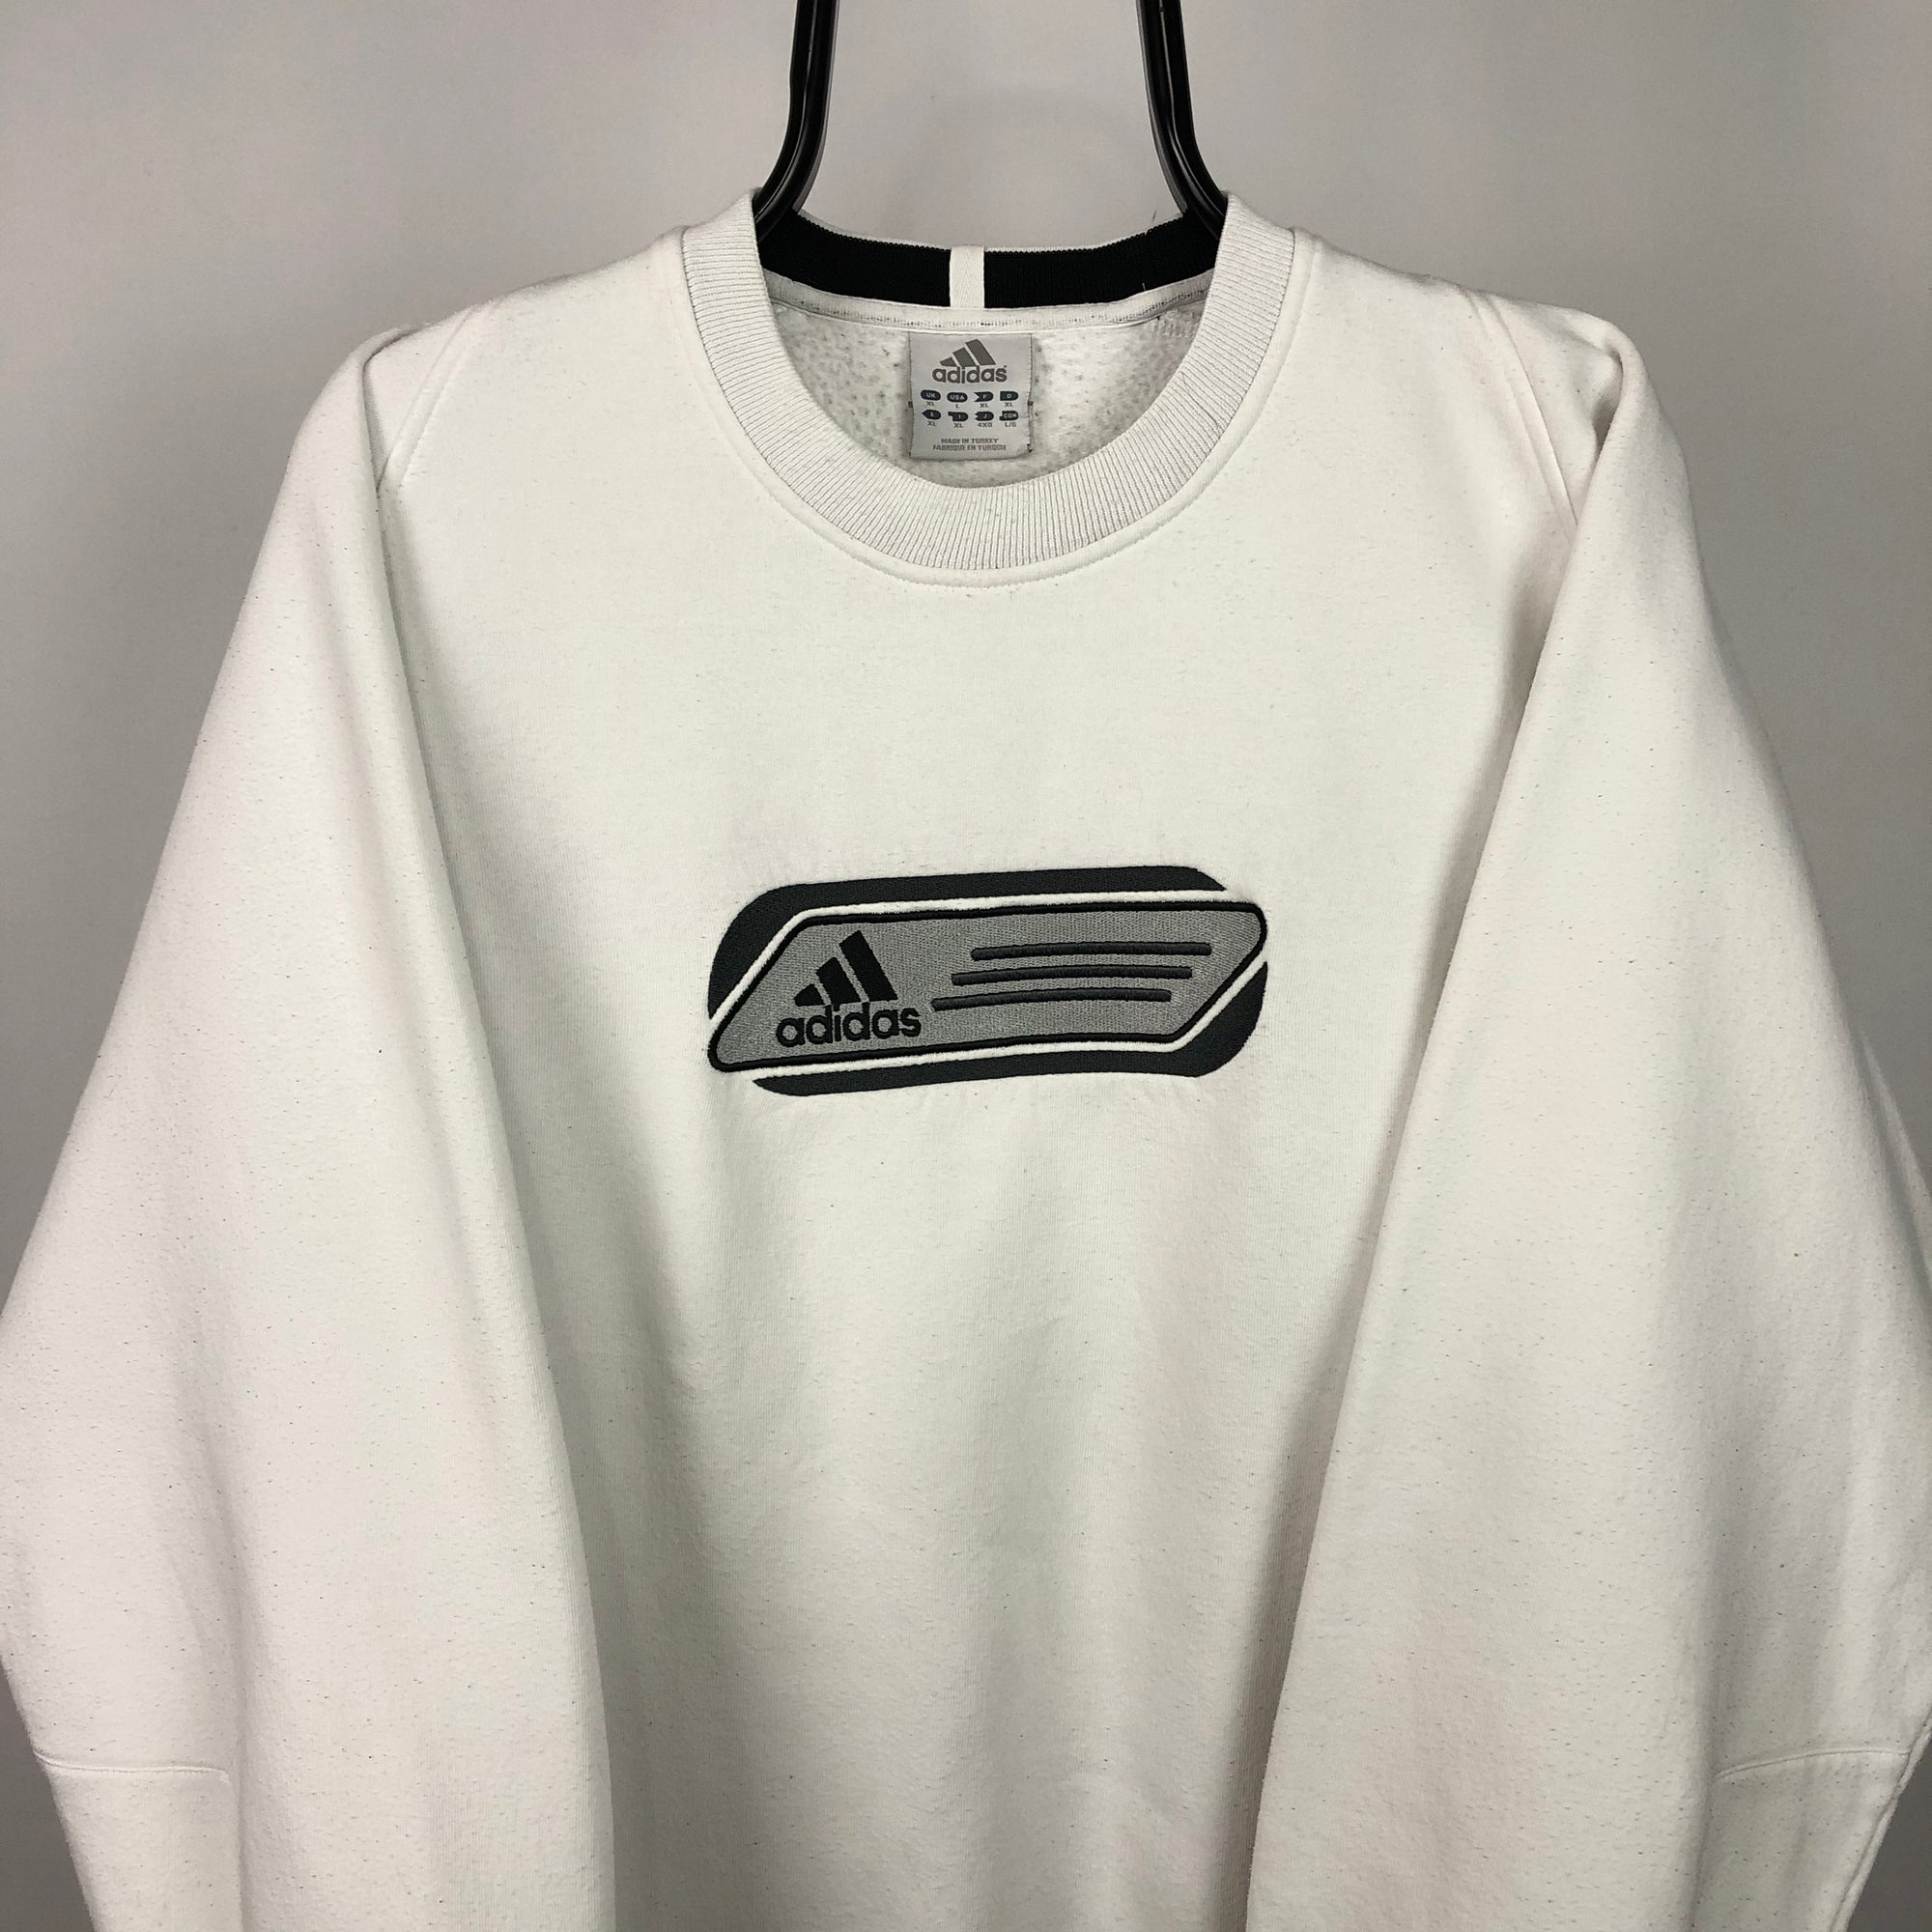 Vintage Adidas Spellout Sweatshirt in White - Men's Large/Women's XL